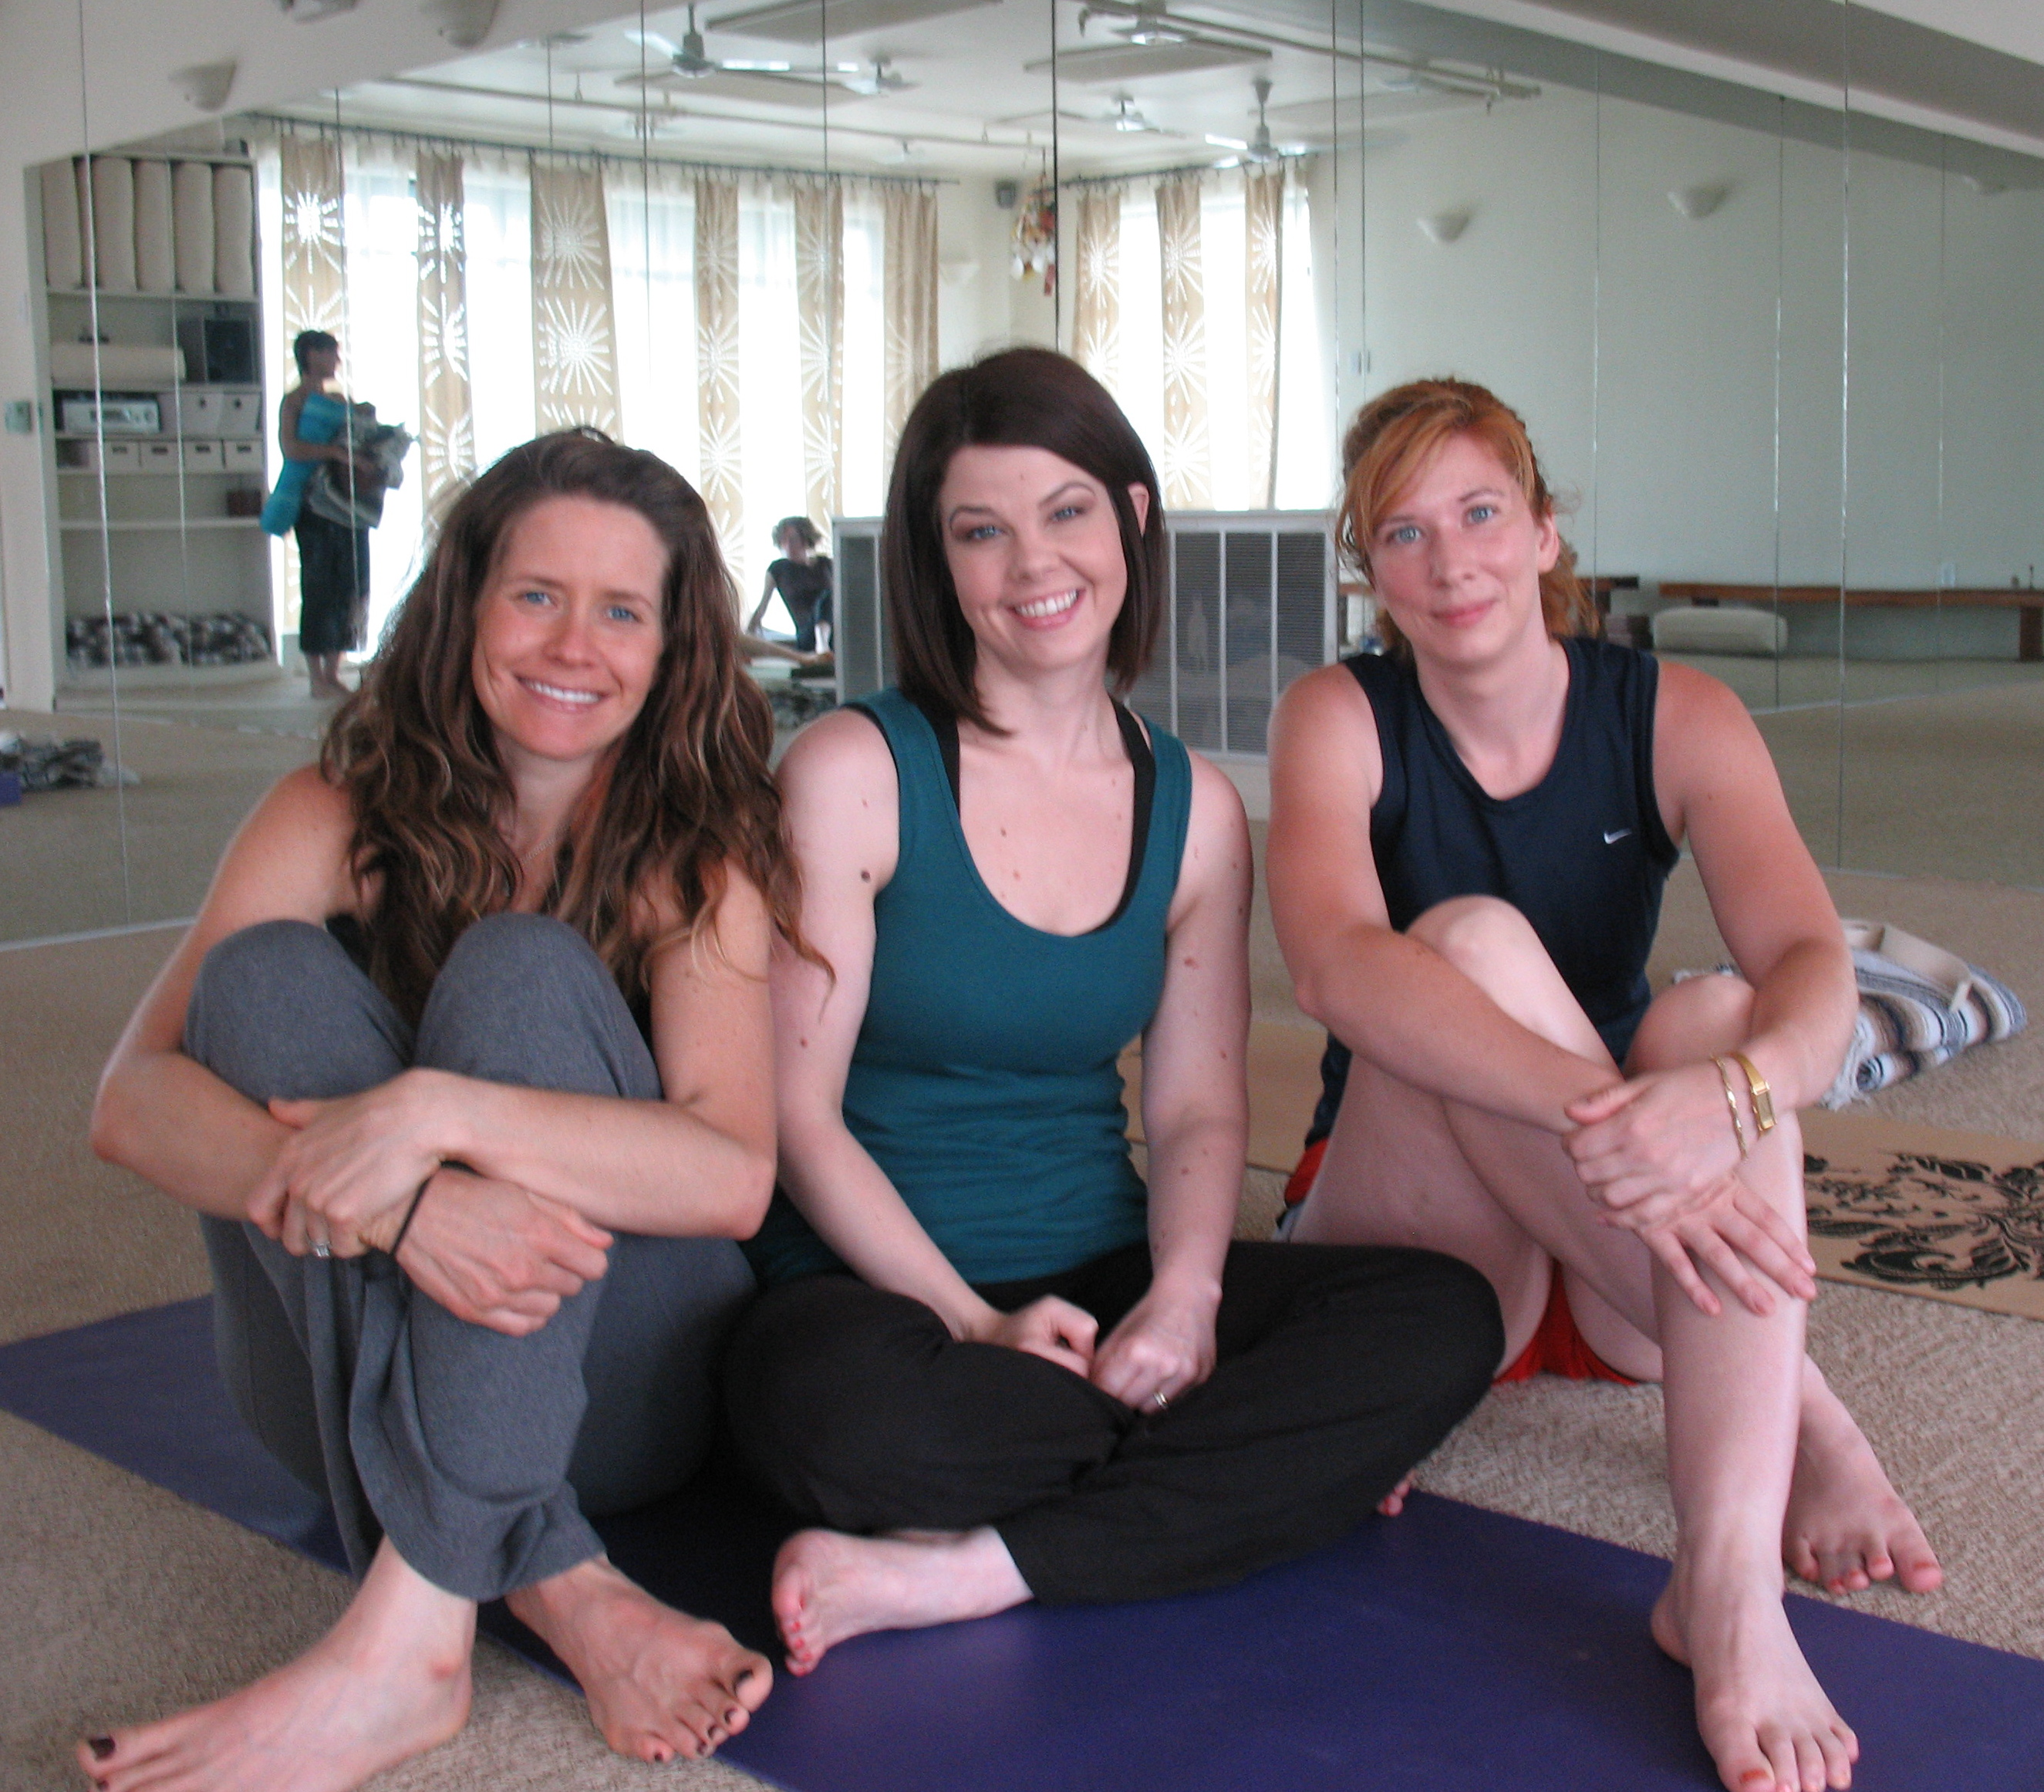 Me & my fellow yoginis.